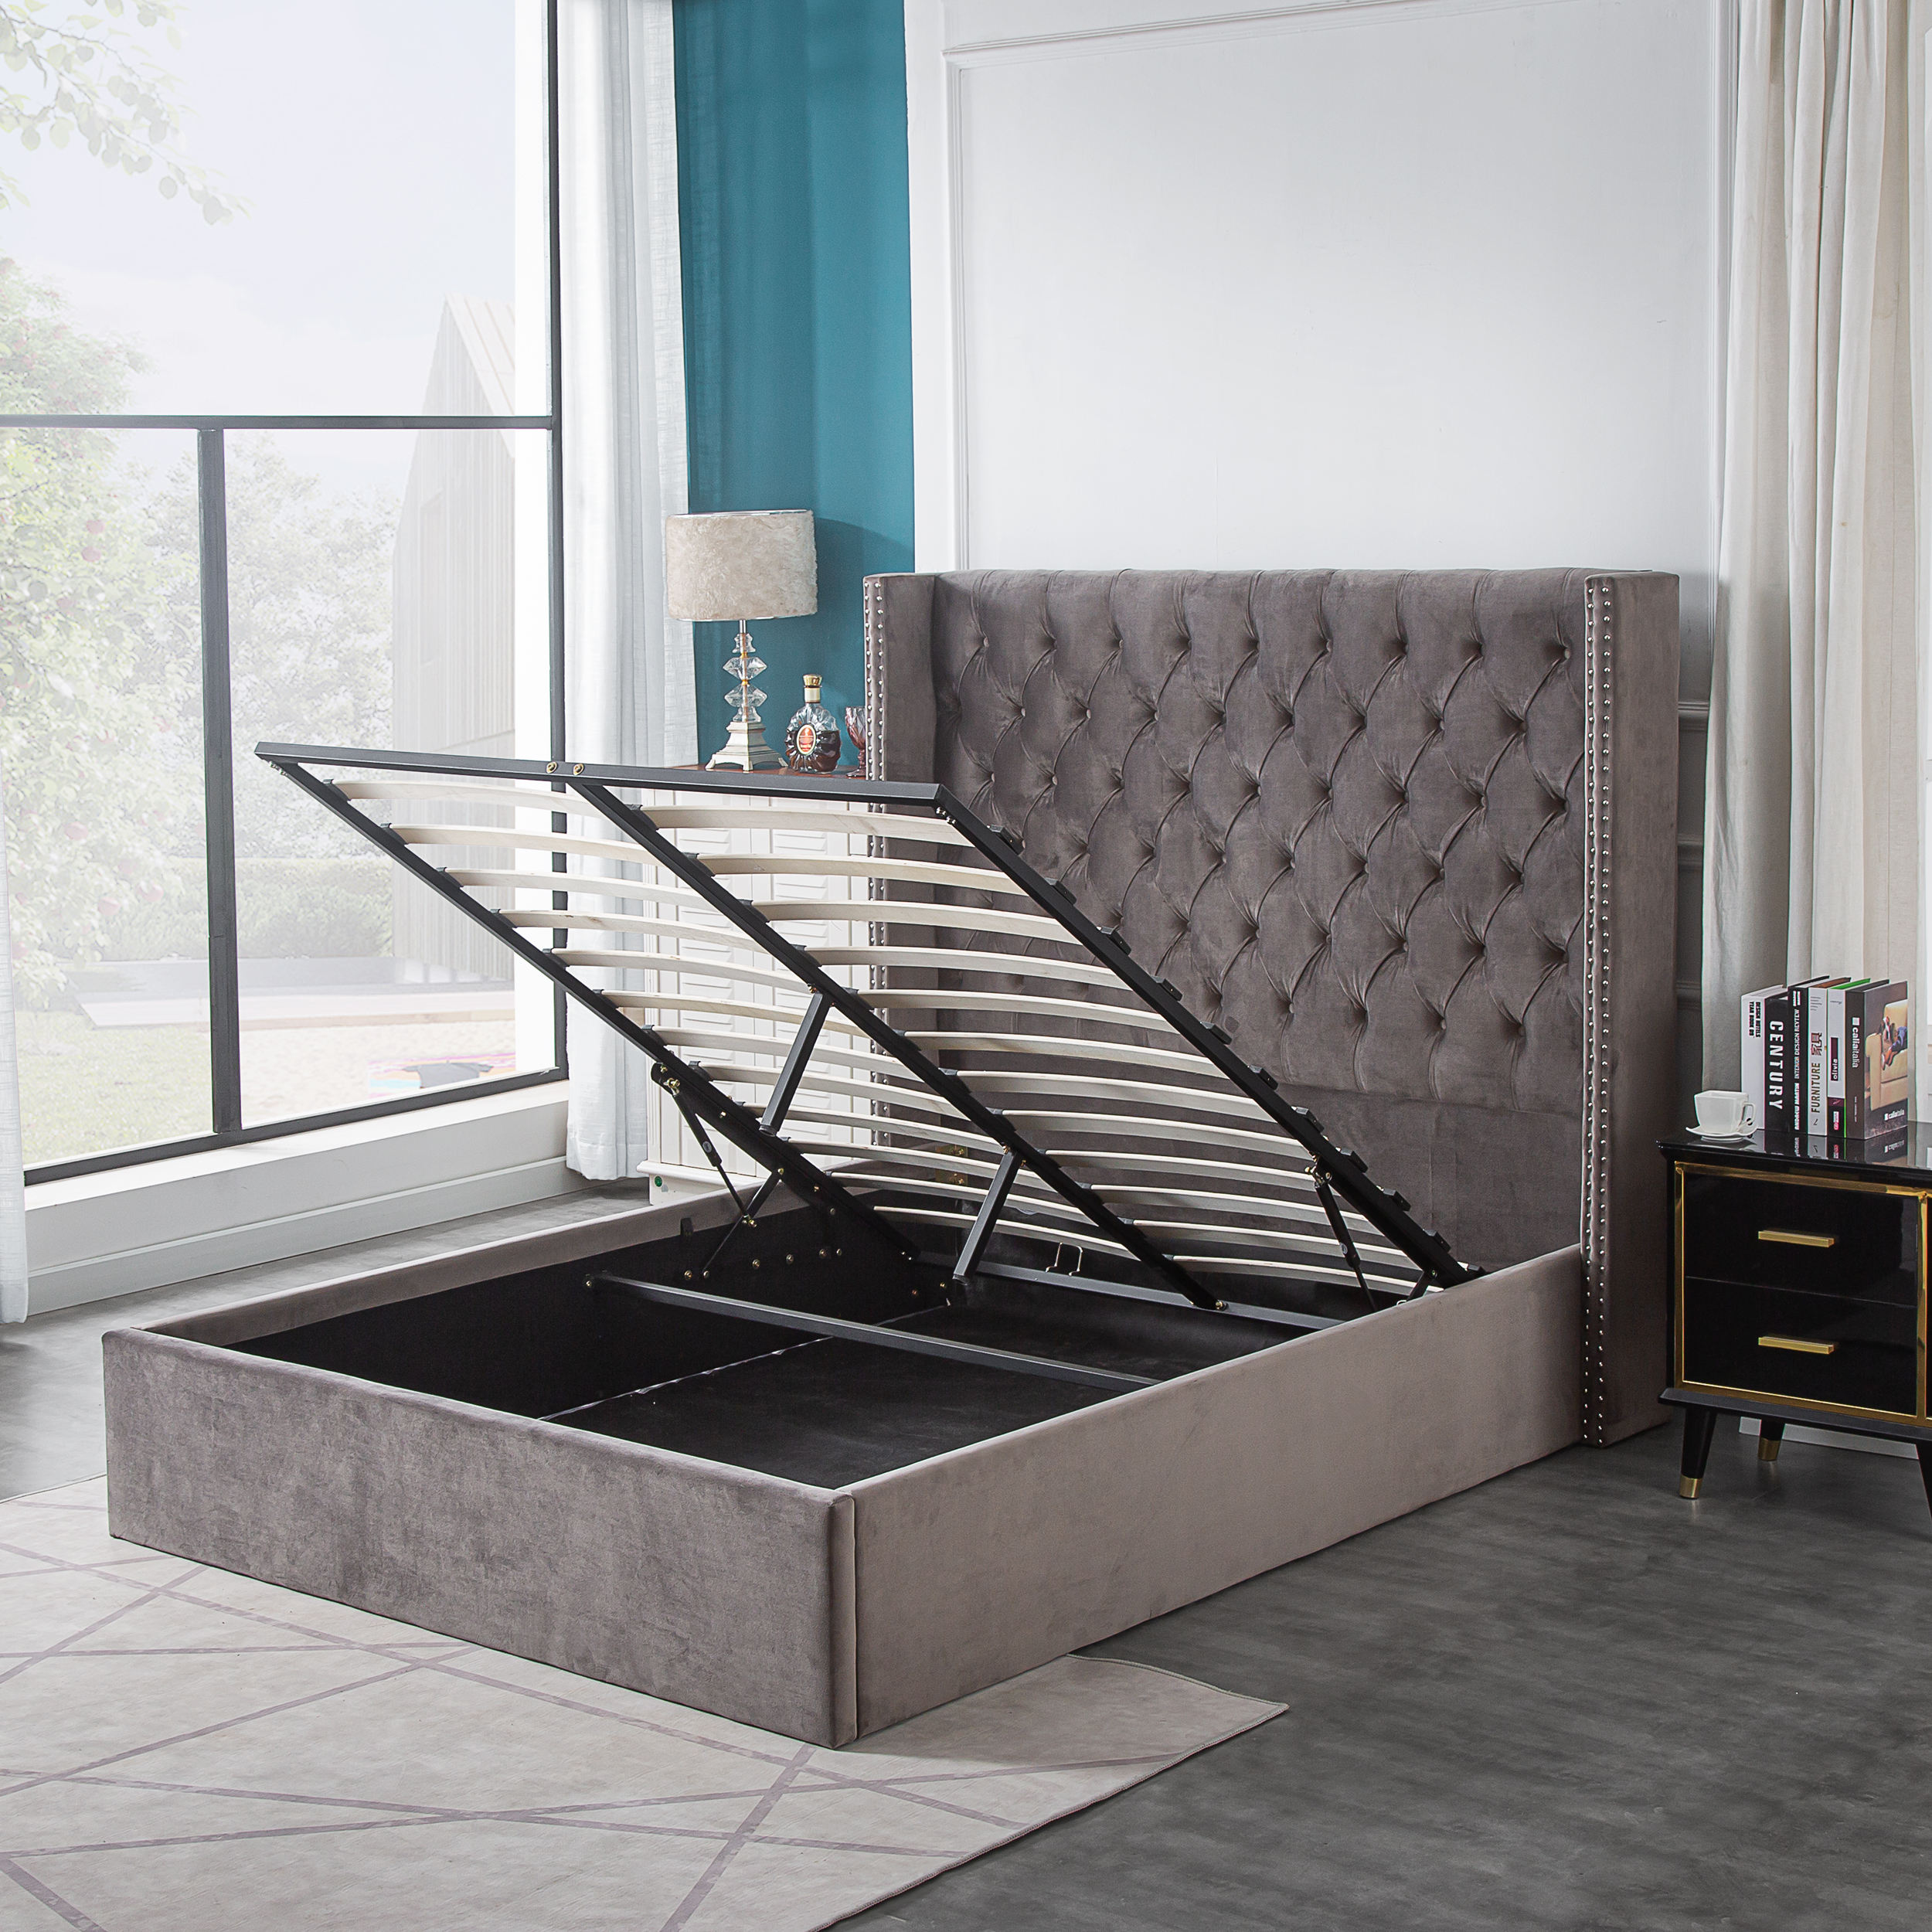 Bestseller Modern Design Dubbele Queen King Size Lift Up Fluwelen Stof Opslag Bed